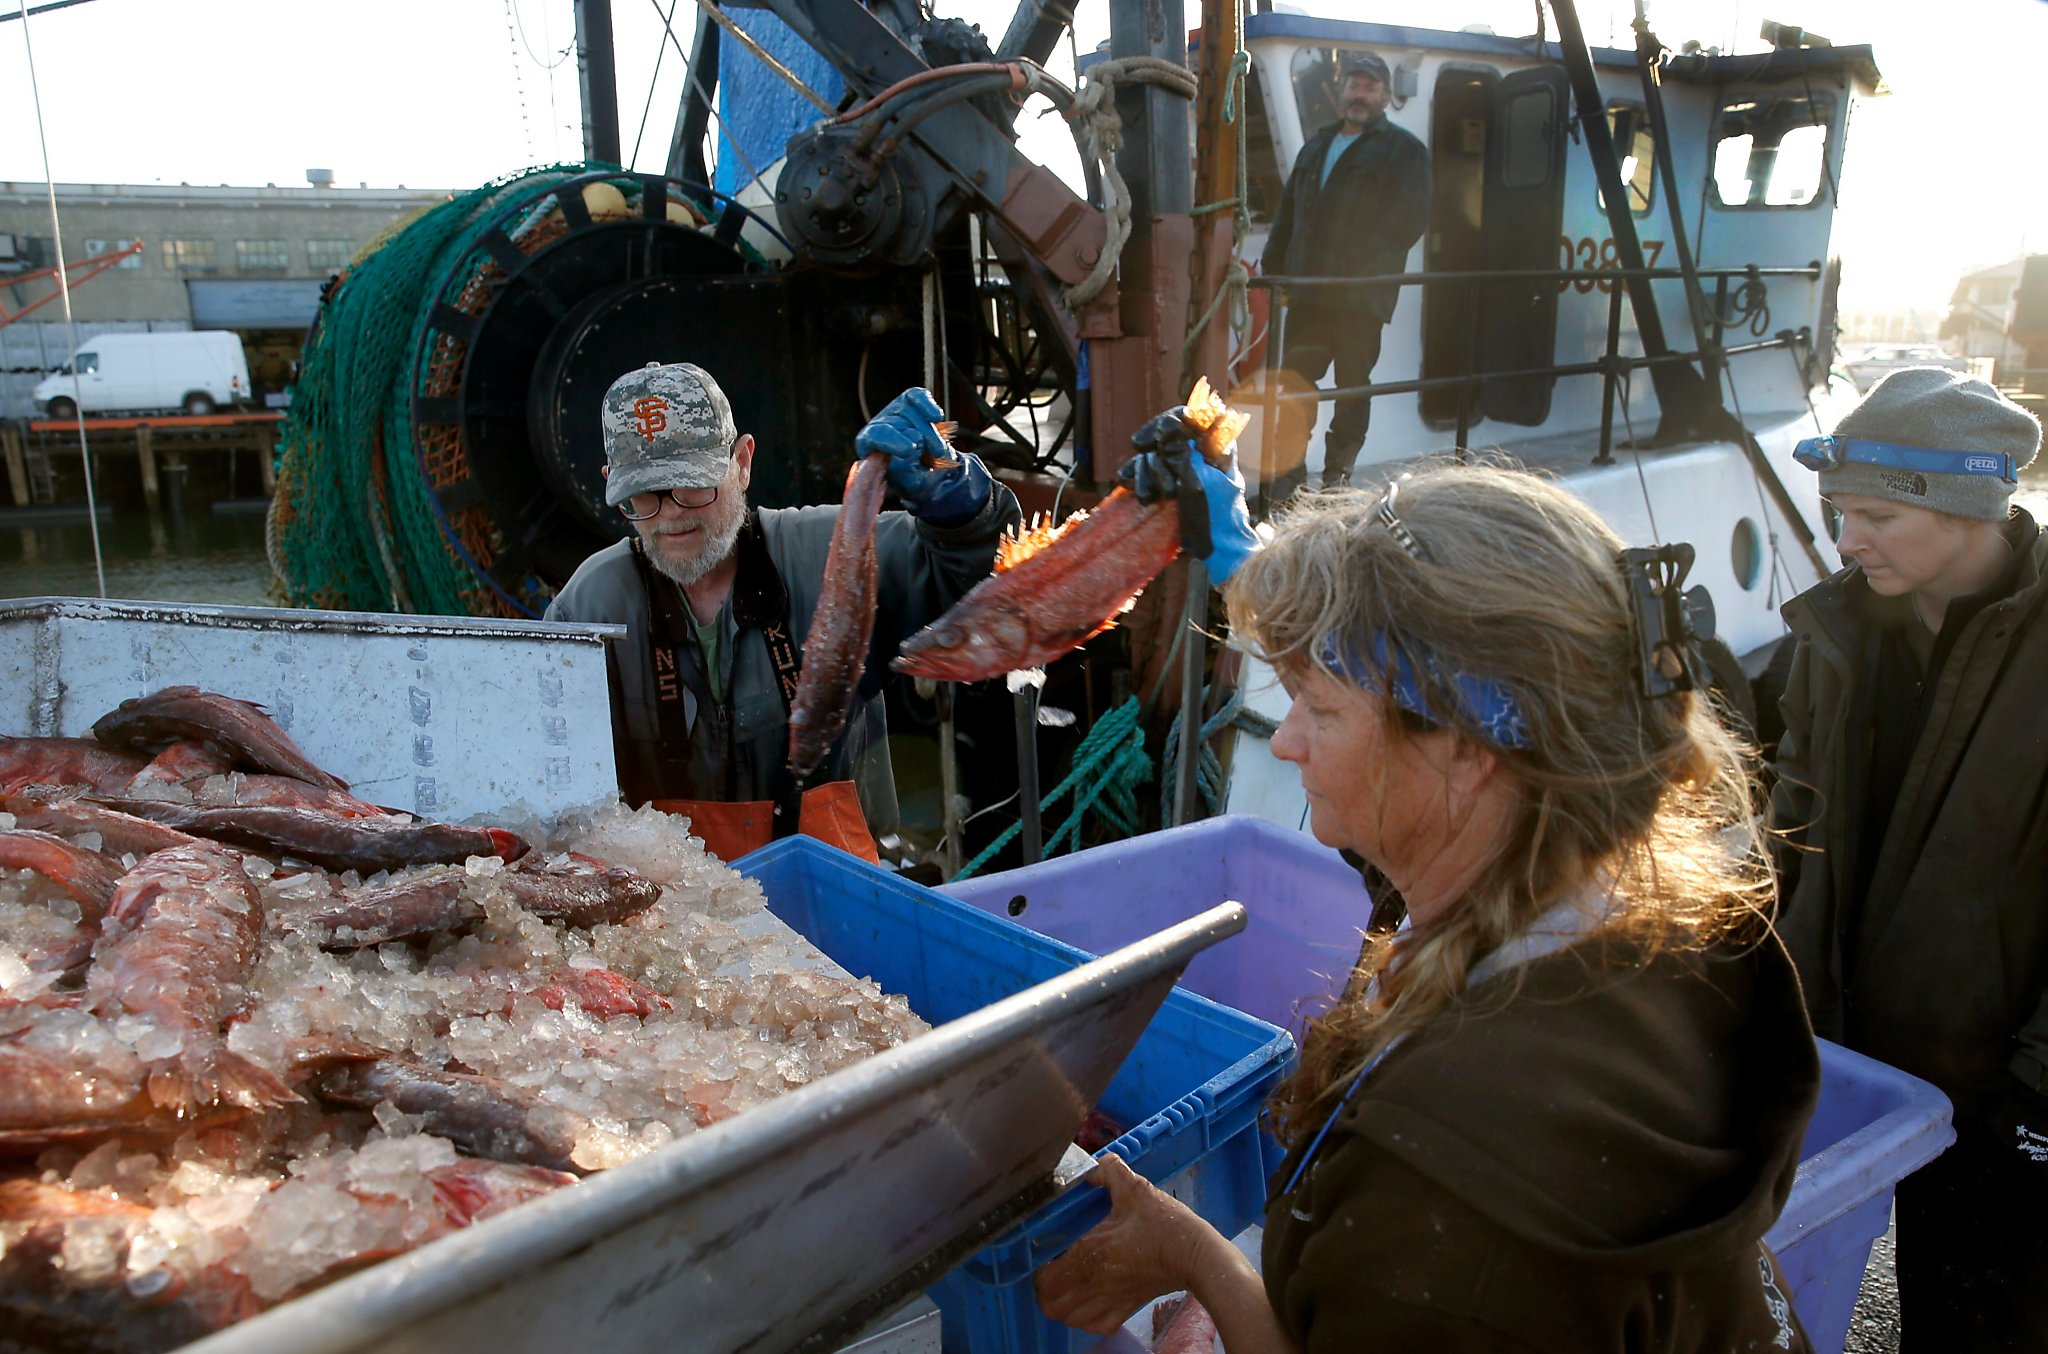 Fish sold right from the boat: The old ways resurface